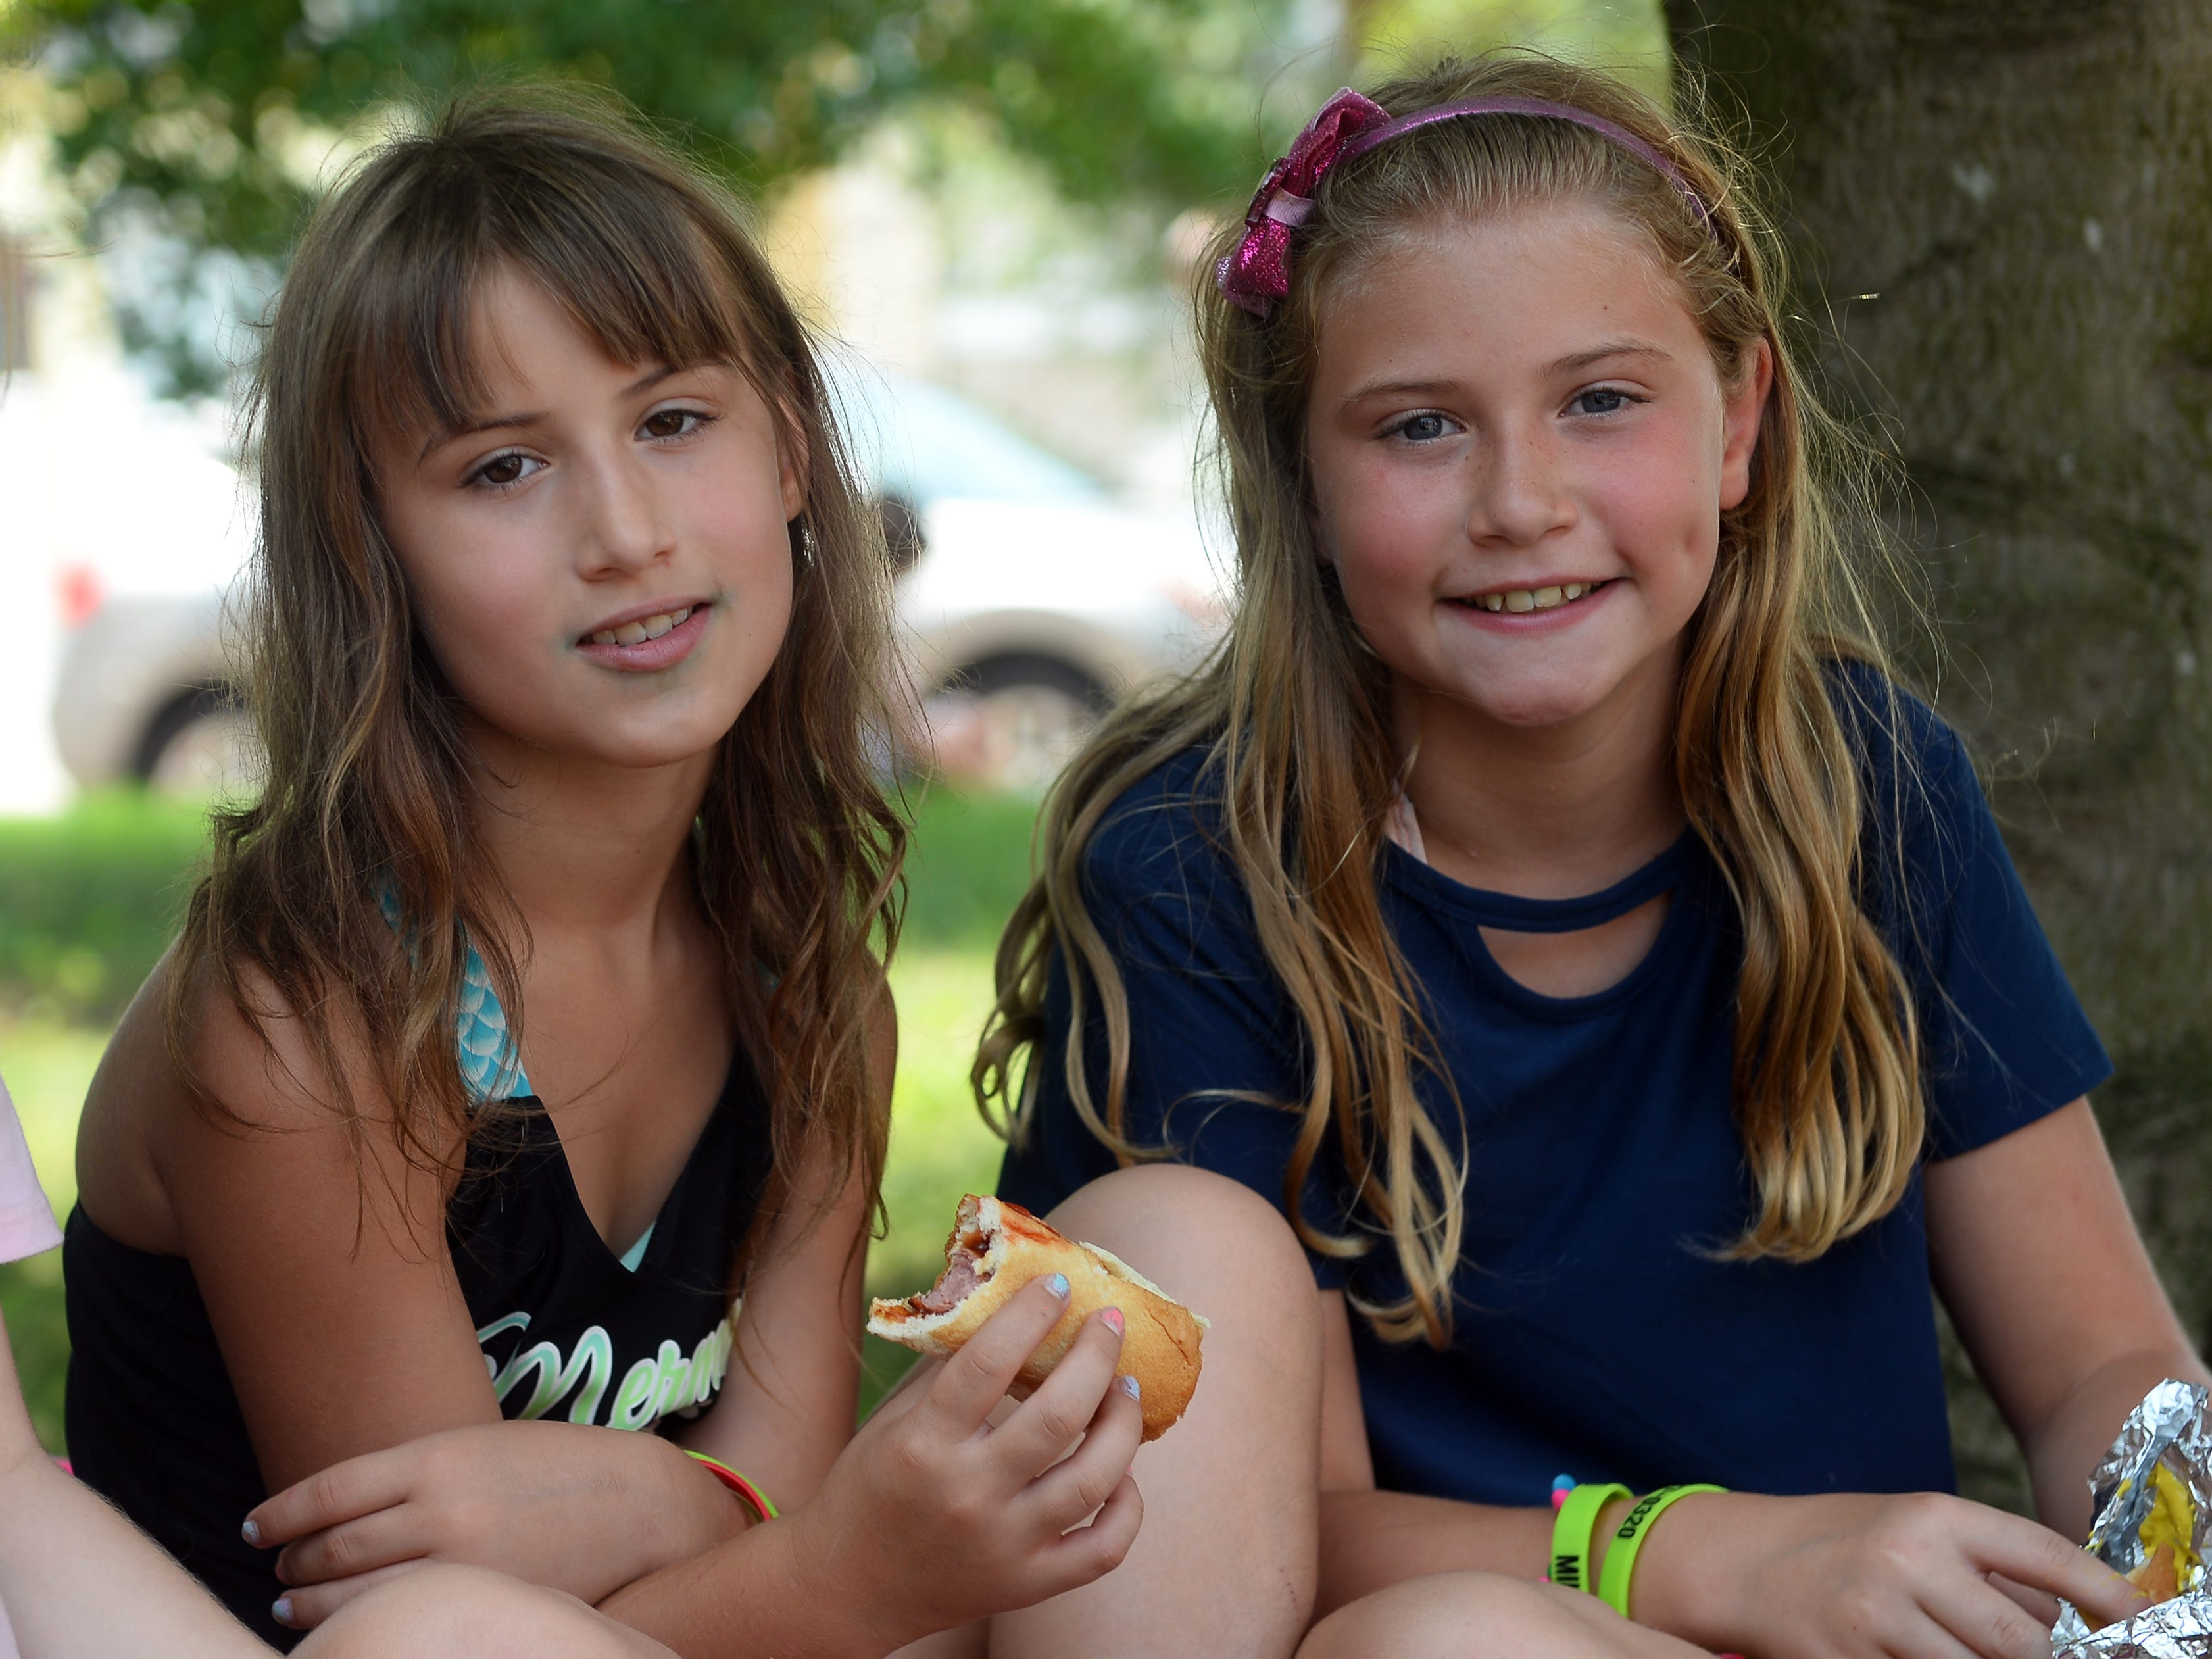 Children enjoy a free lunch during Millville's Play Streets event on Wednesday, August 15.